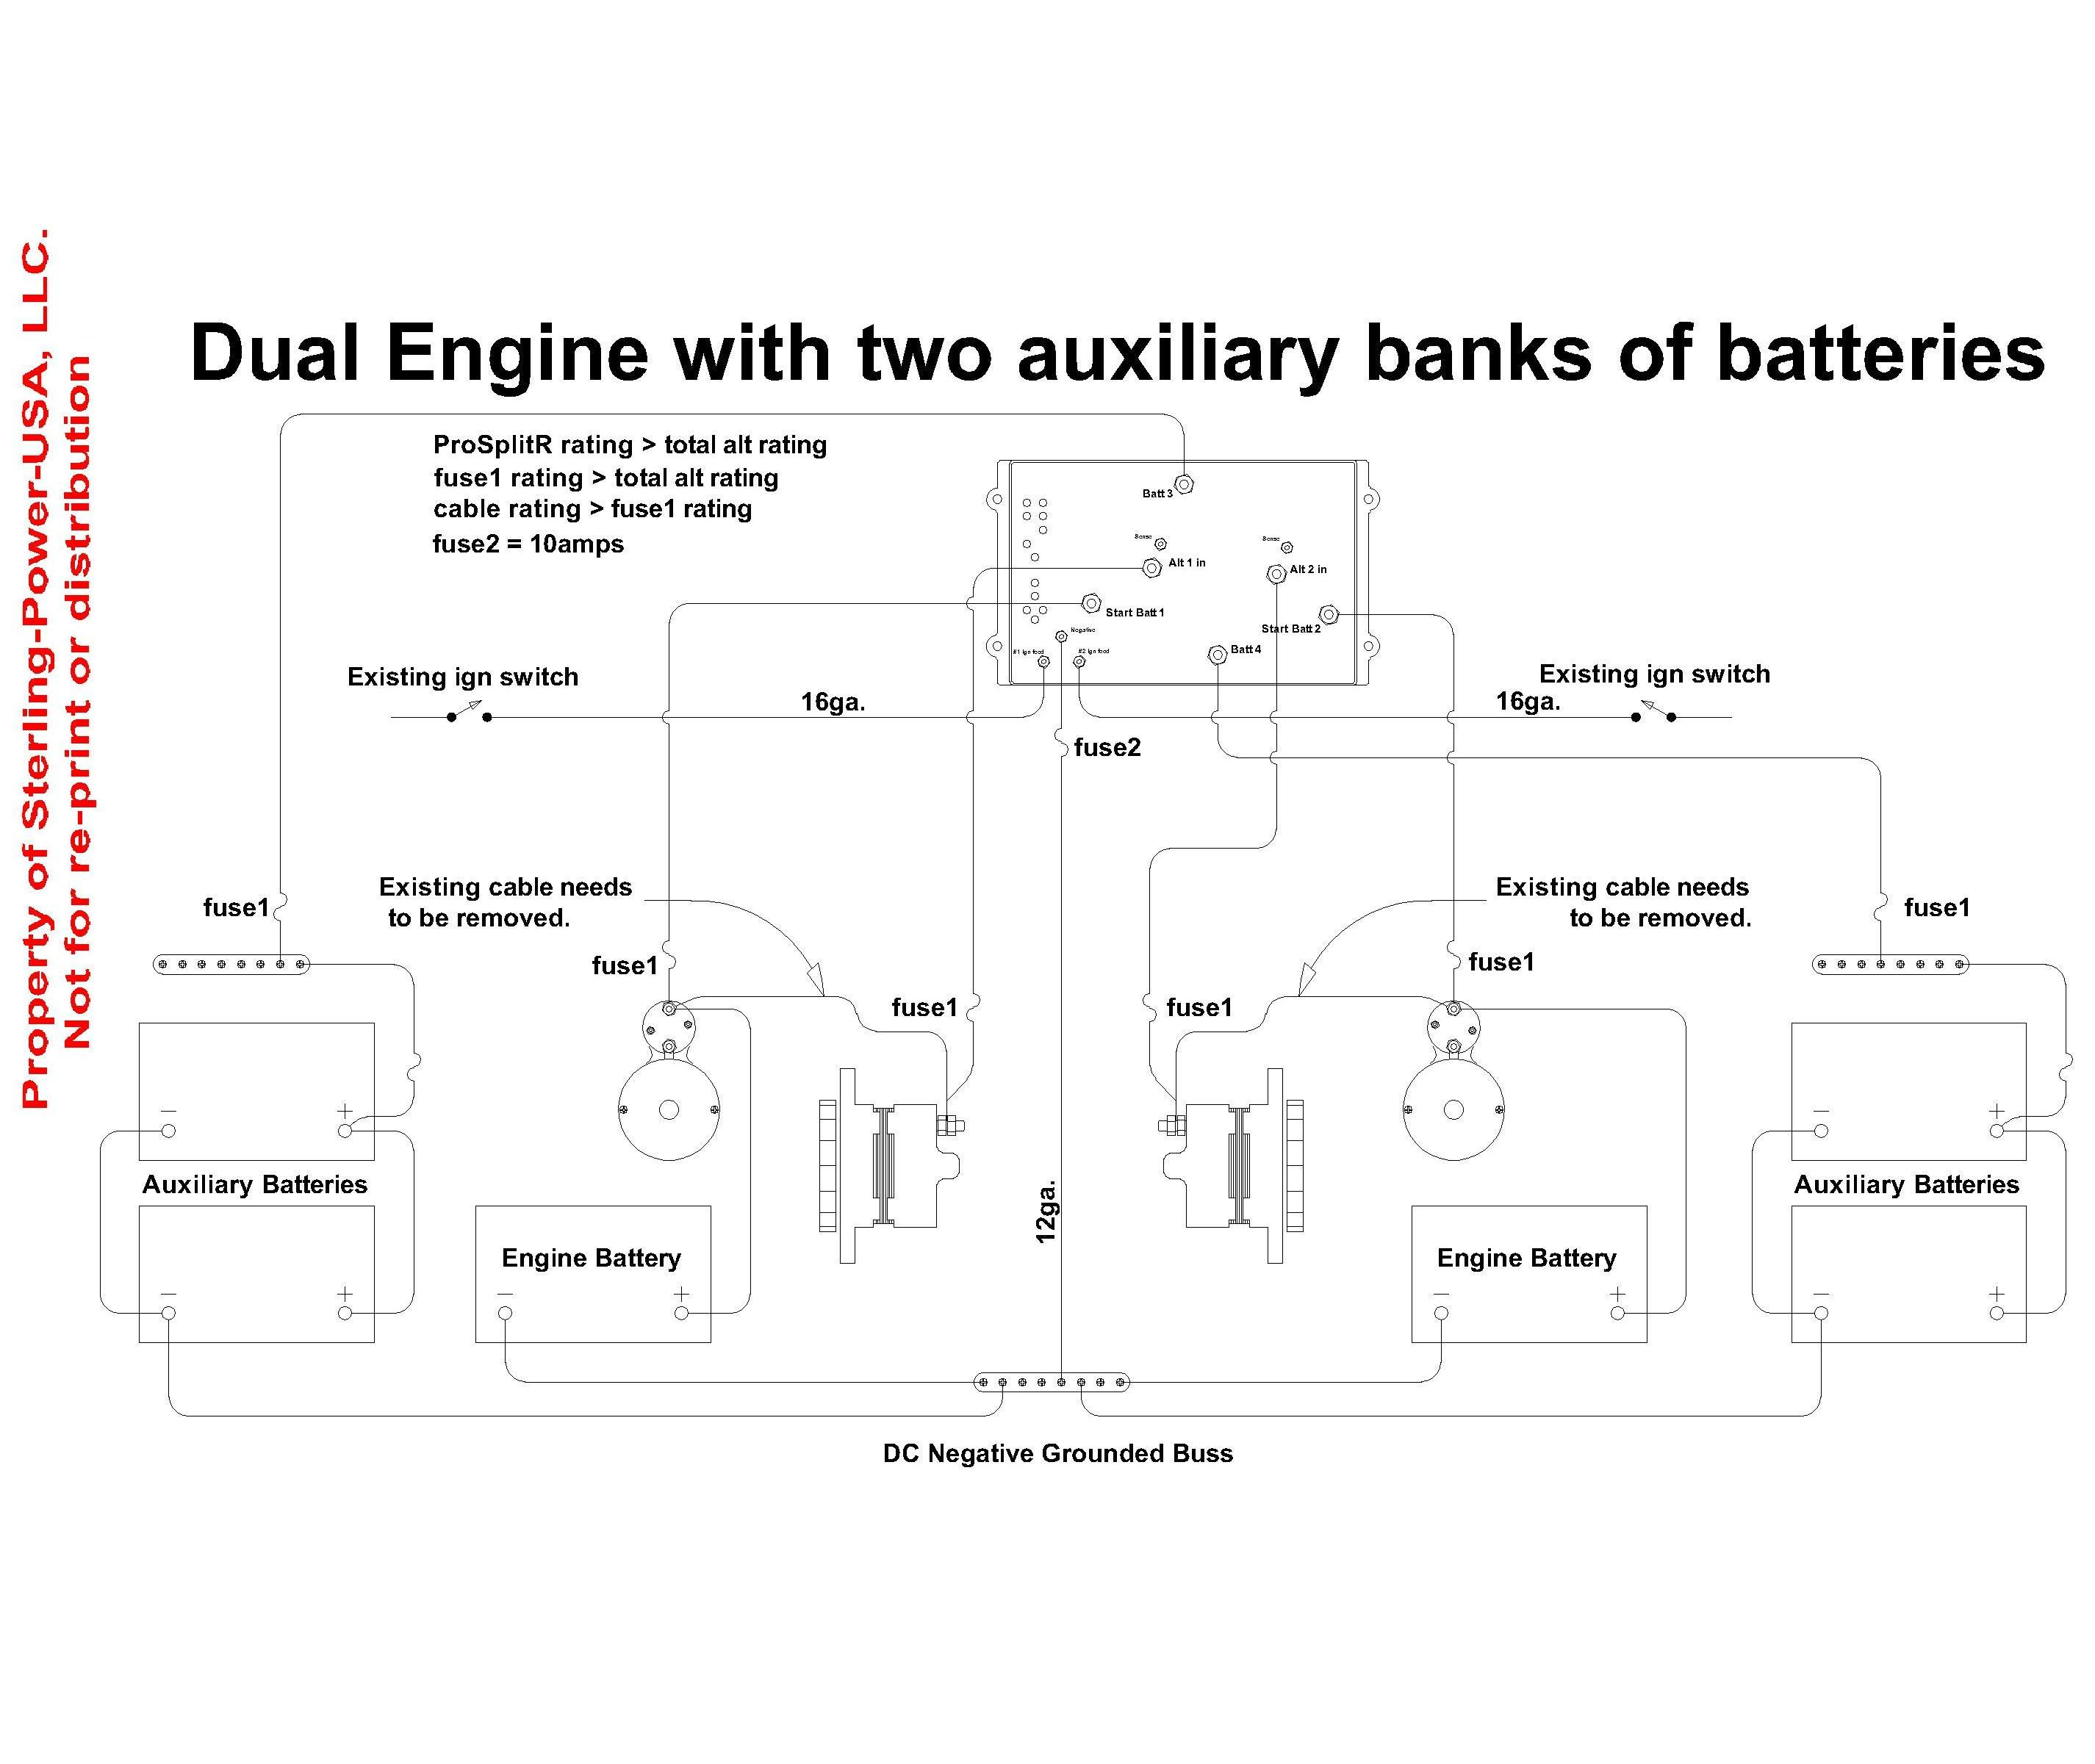 dc battery wiring diagram wiring diagramdc battery wiring diagram